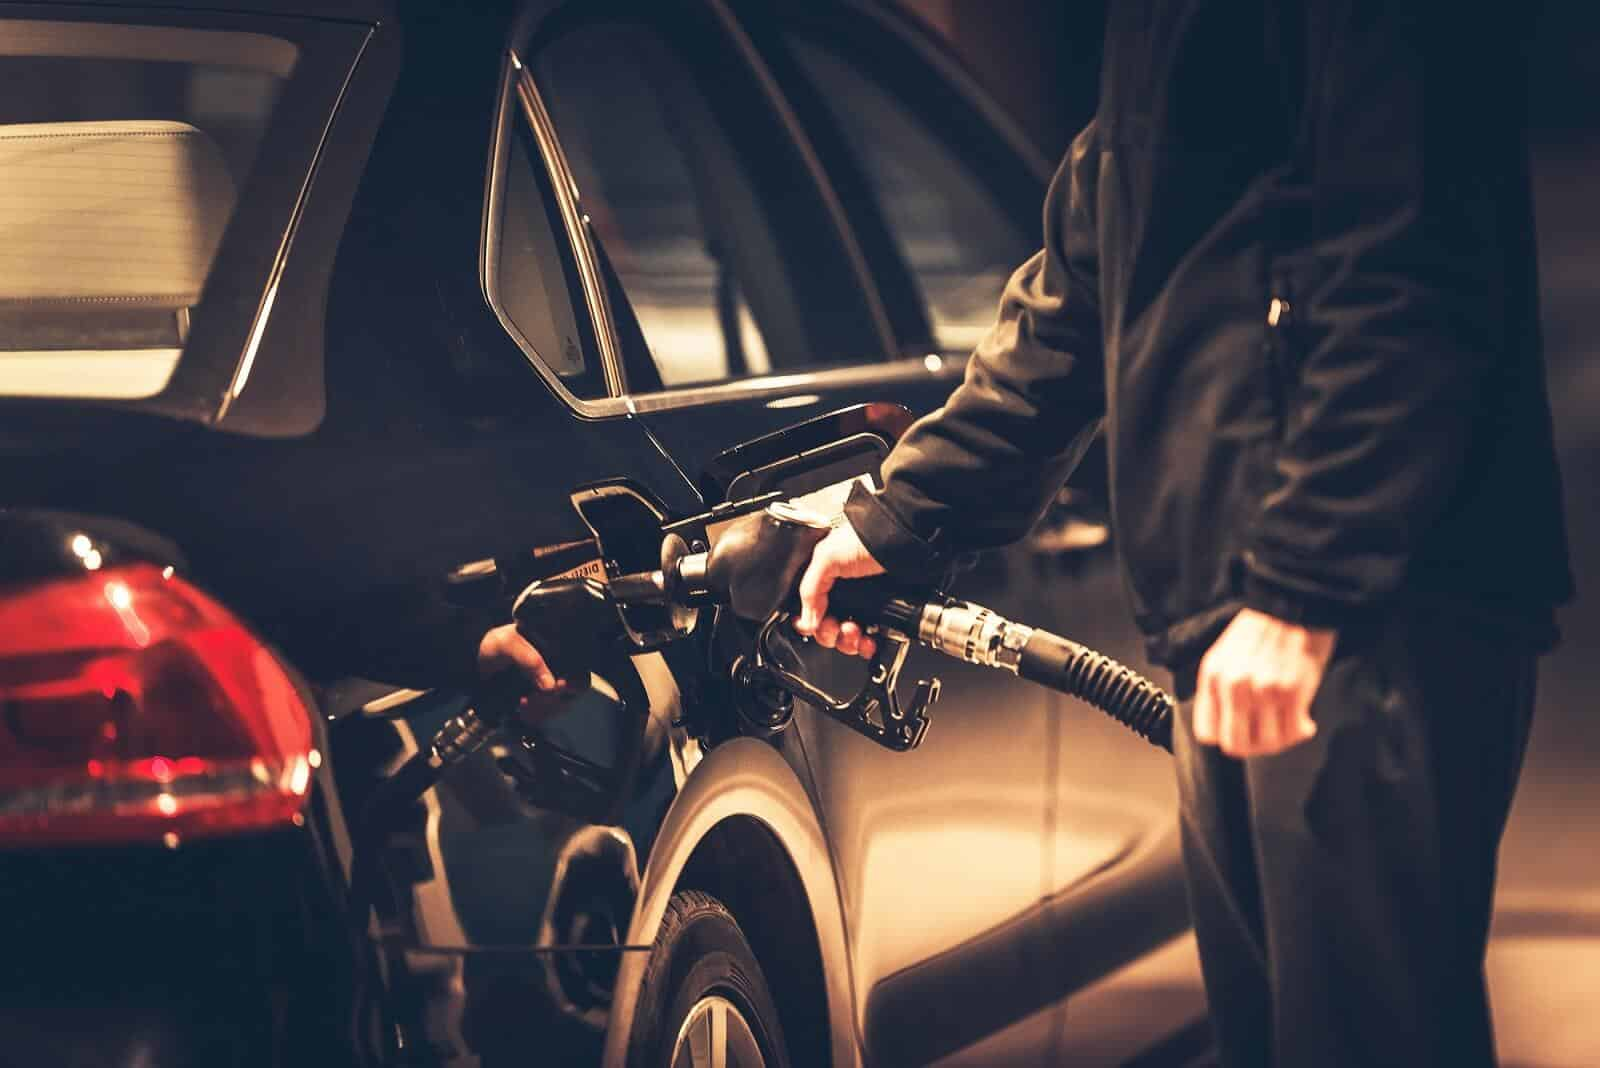 Potential ban on Diesel cars in London